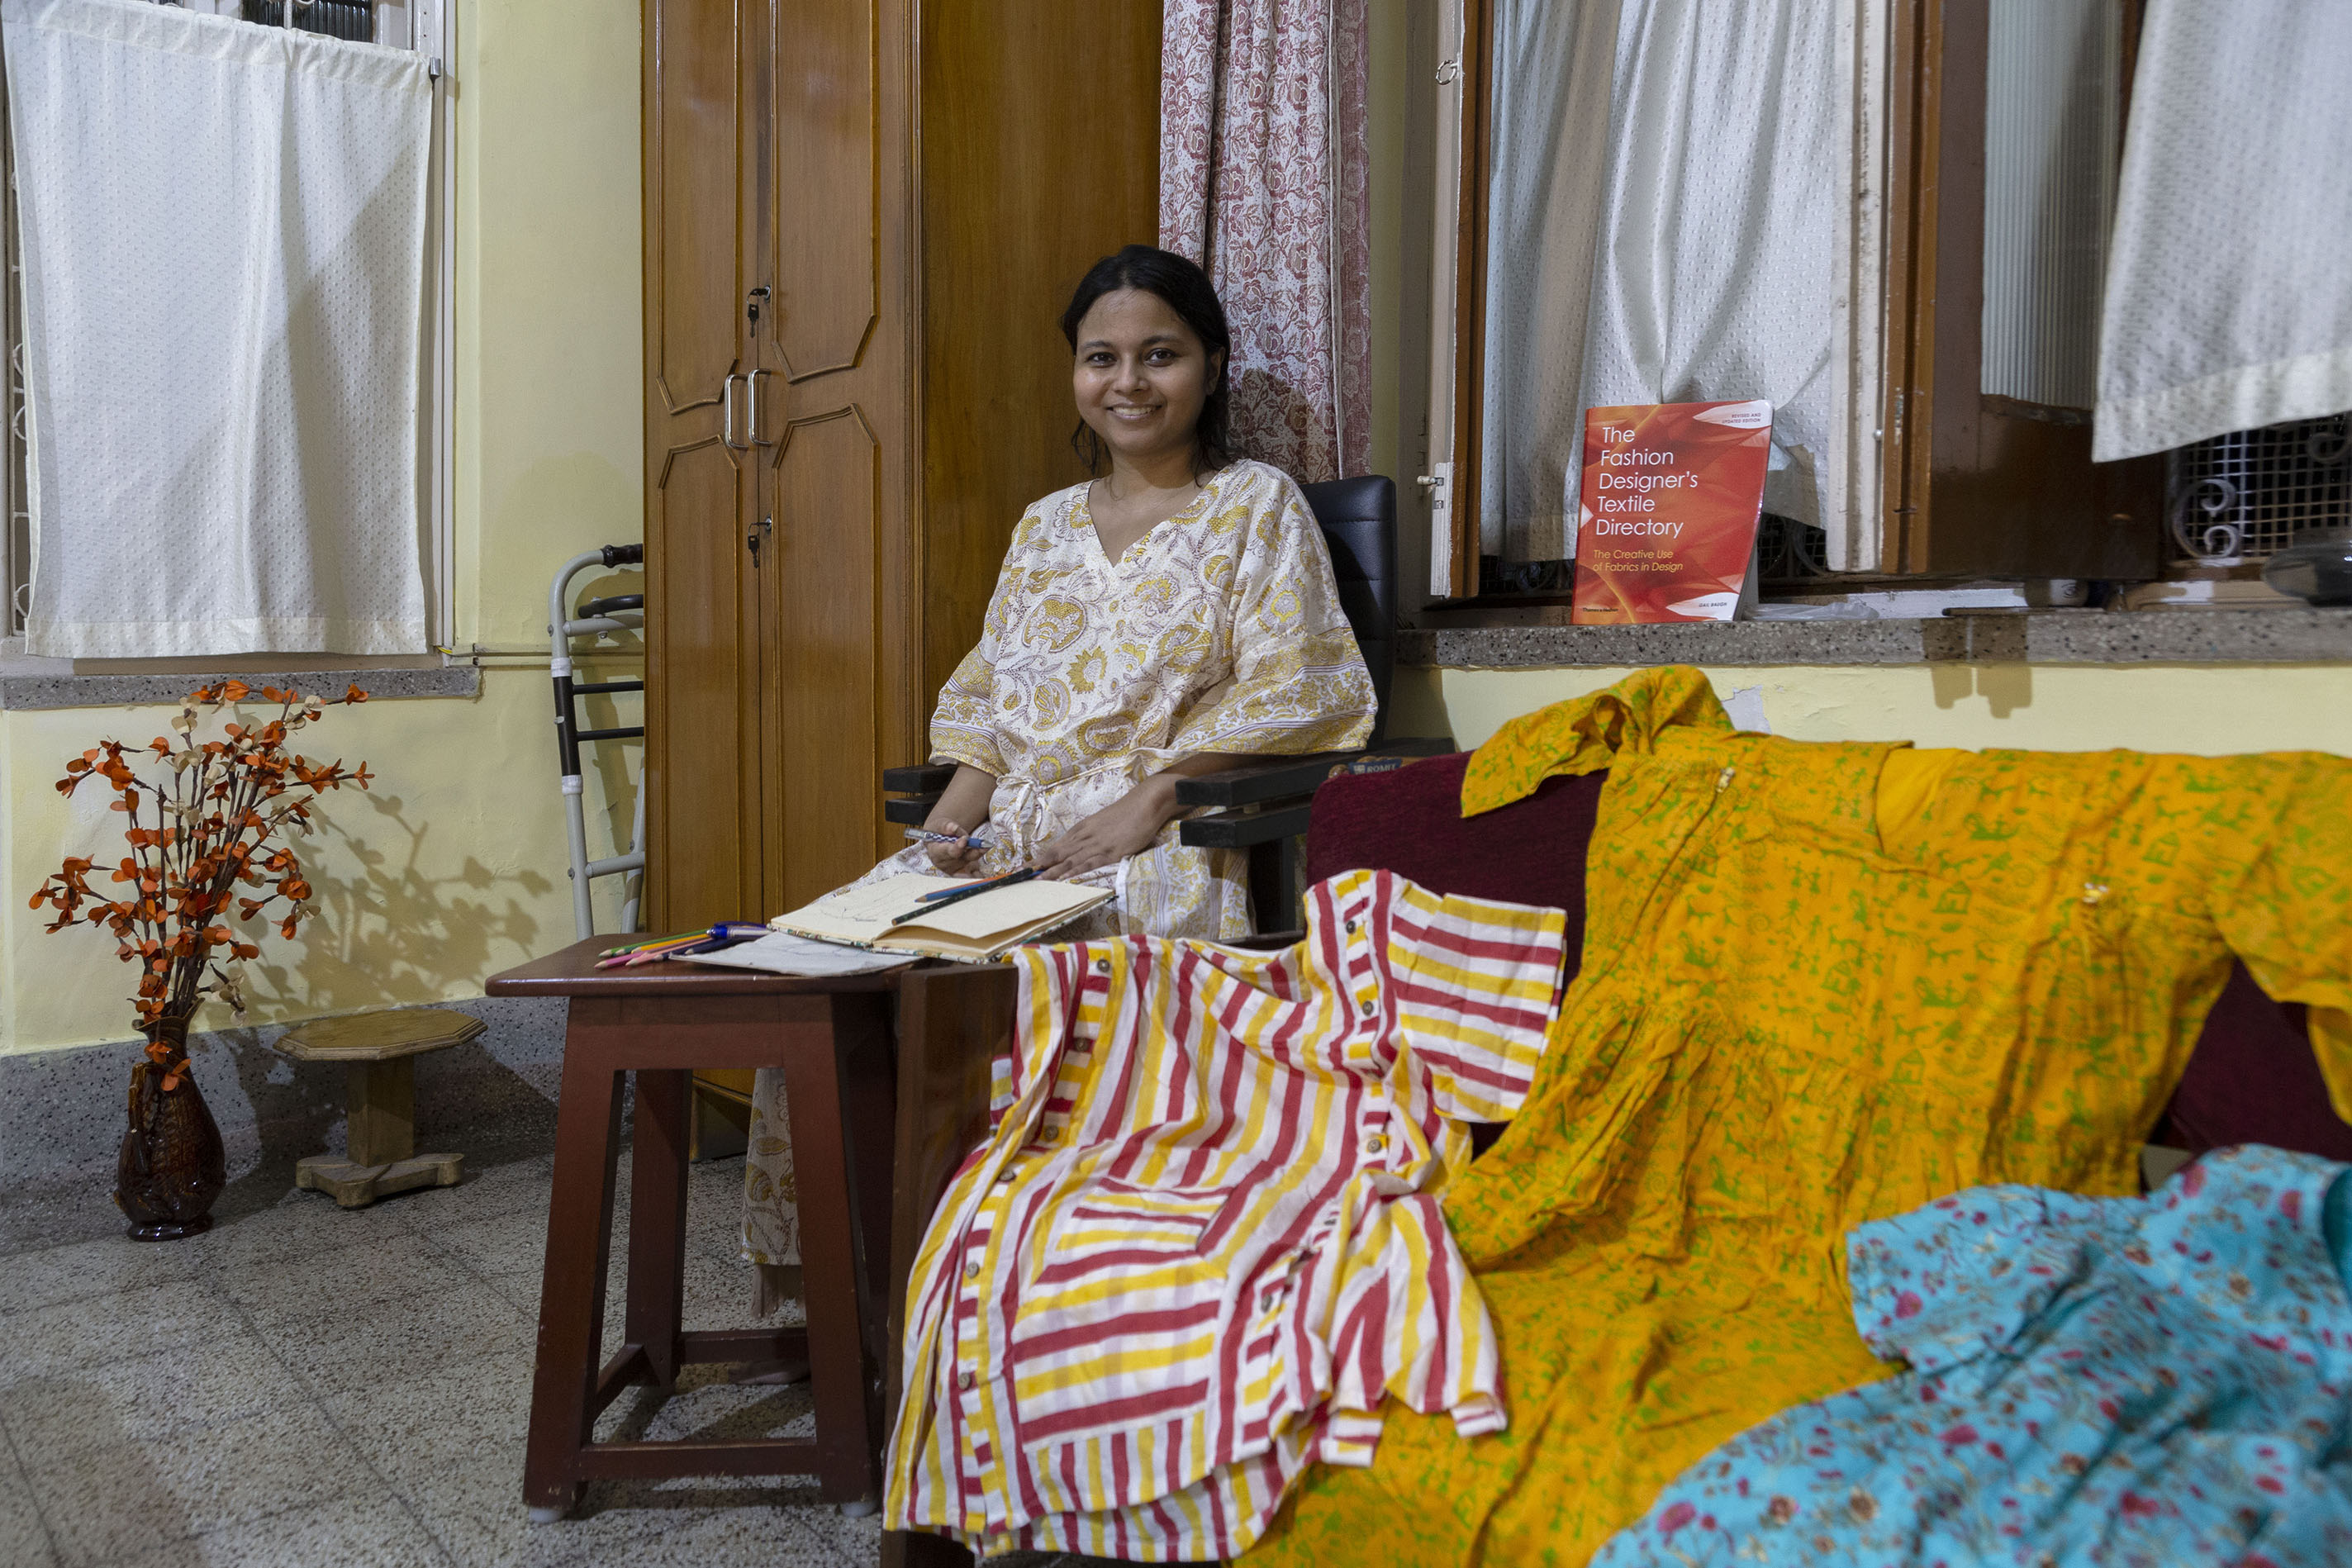 """Soumita Basu (39), wearing a loose gown in a yellow and brown print on a white background, sits on a padded chair in a room. She holds a pen in her right hand and an open notebook rests on her lap. There are colour pencils on a tall wooden stool in front of her. To the left is a wooden cupboard next to a window with a white curtain. To the right is a double sofa almost hidden by three large garments draped across it; they are adaptive clothes meant for those with physical disabilities. The gown on the left has vertical and horizontal panels of red, yellow and white candy stripes. The middle one is mustard yellow printed with small green images of tribal art. The gown on the right is sapphire blue with small pink flowers. A red book titled """"The Fashion Designer's Textile Directory"""" is propped up on the window sill behind the sofa. The window has white curtains."""